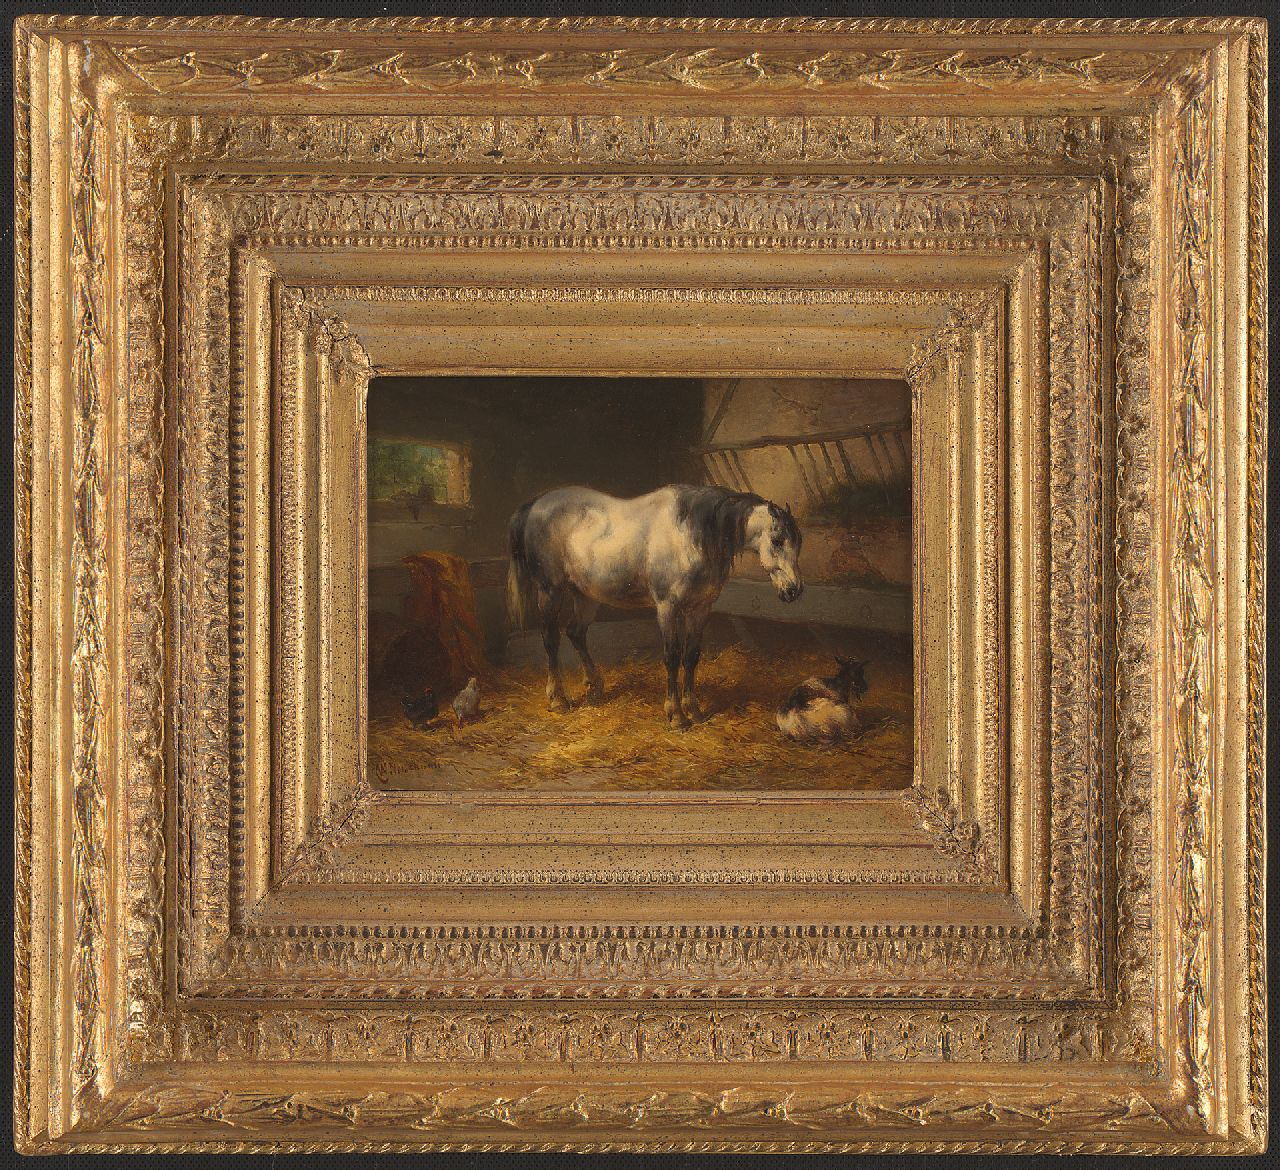 Verschuur W.  | Wouterus Verschuur, A resting horse in a stable, oil on panel 15.1 x 20.5 cm, signed l.l.